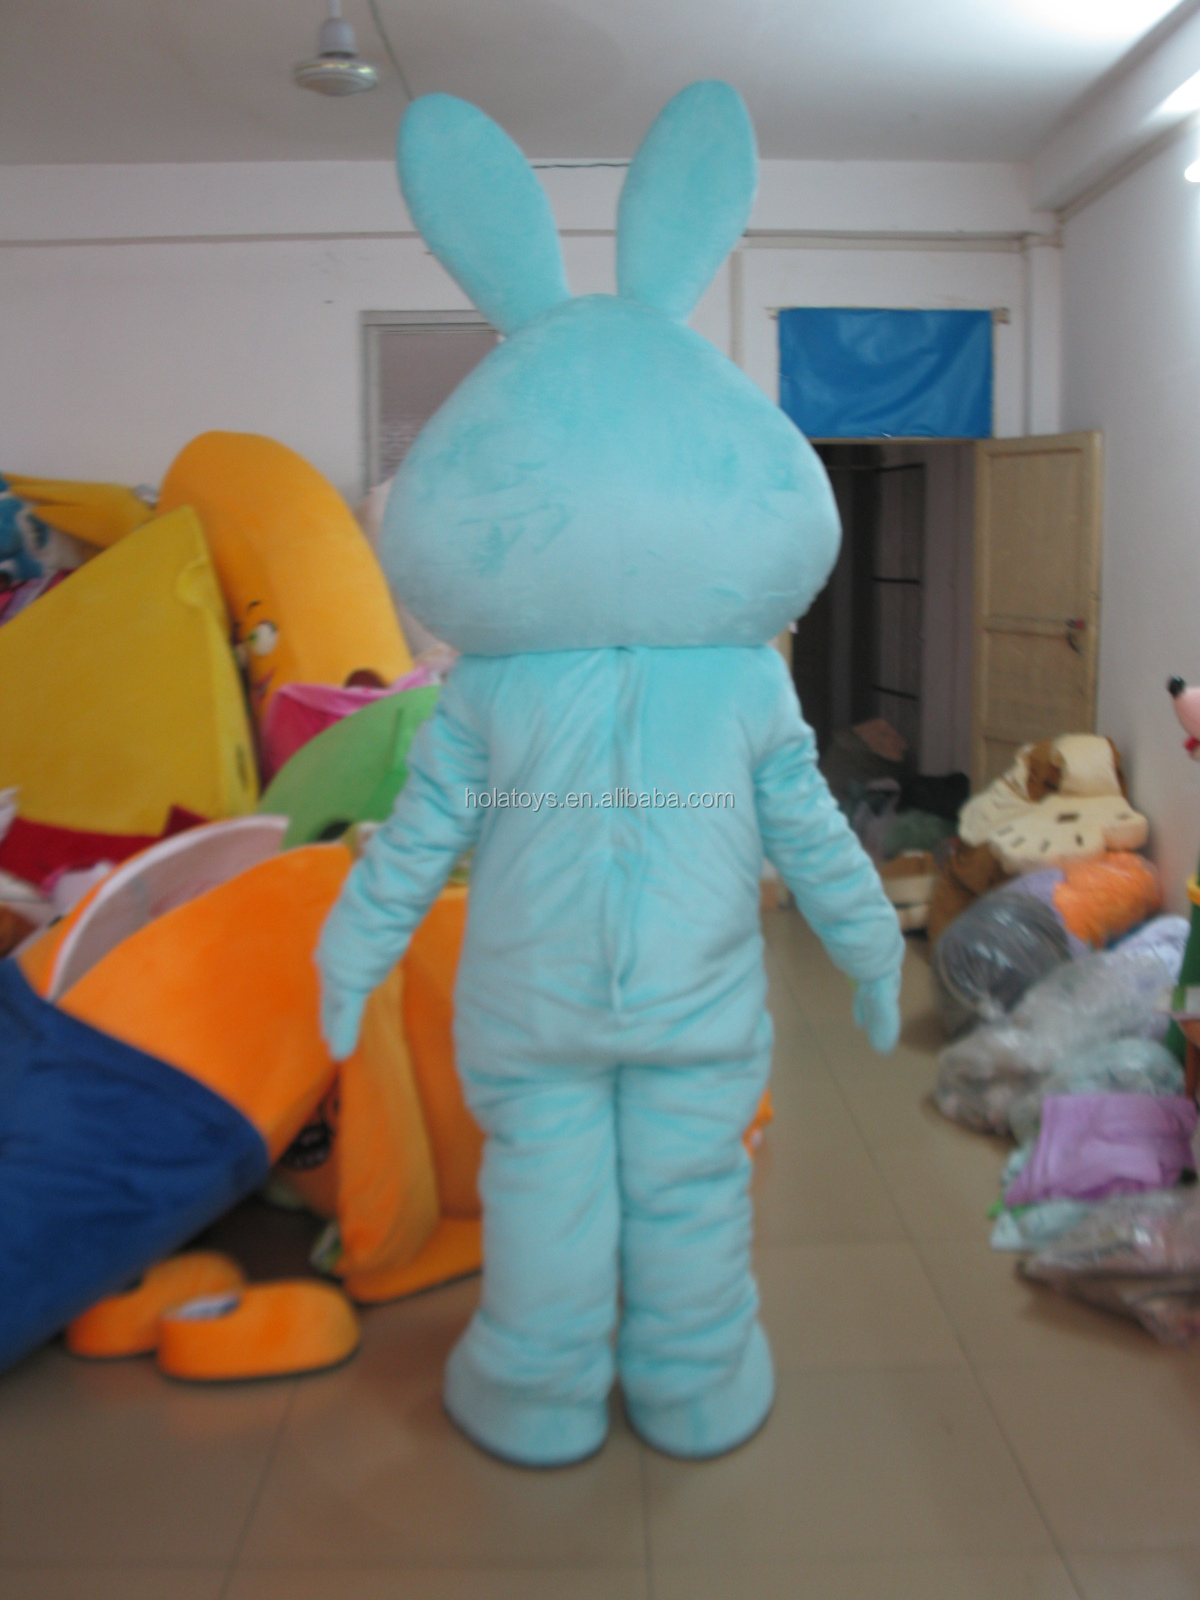 Hola new bunny costume/easter bunny costume/professional cartoon character costumes